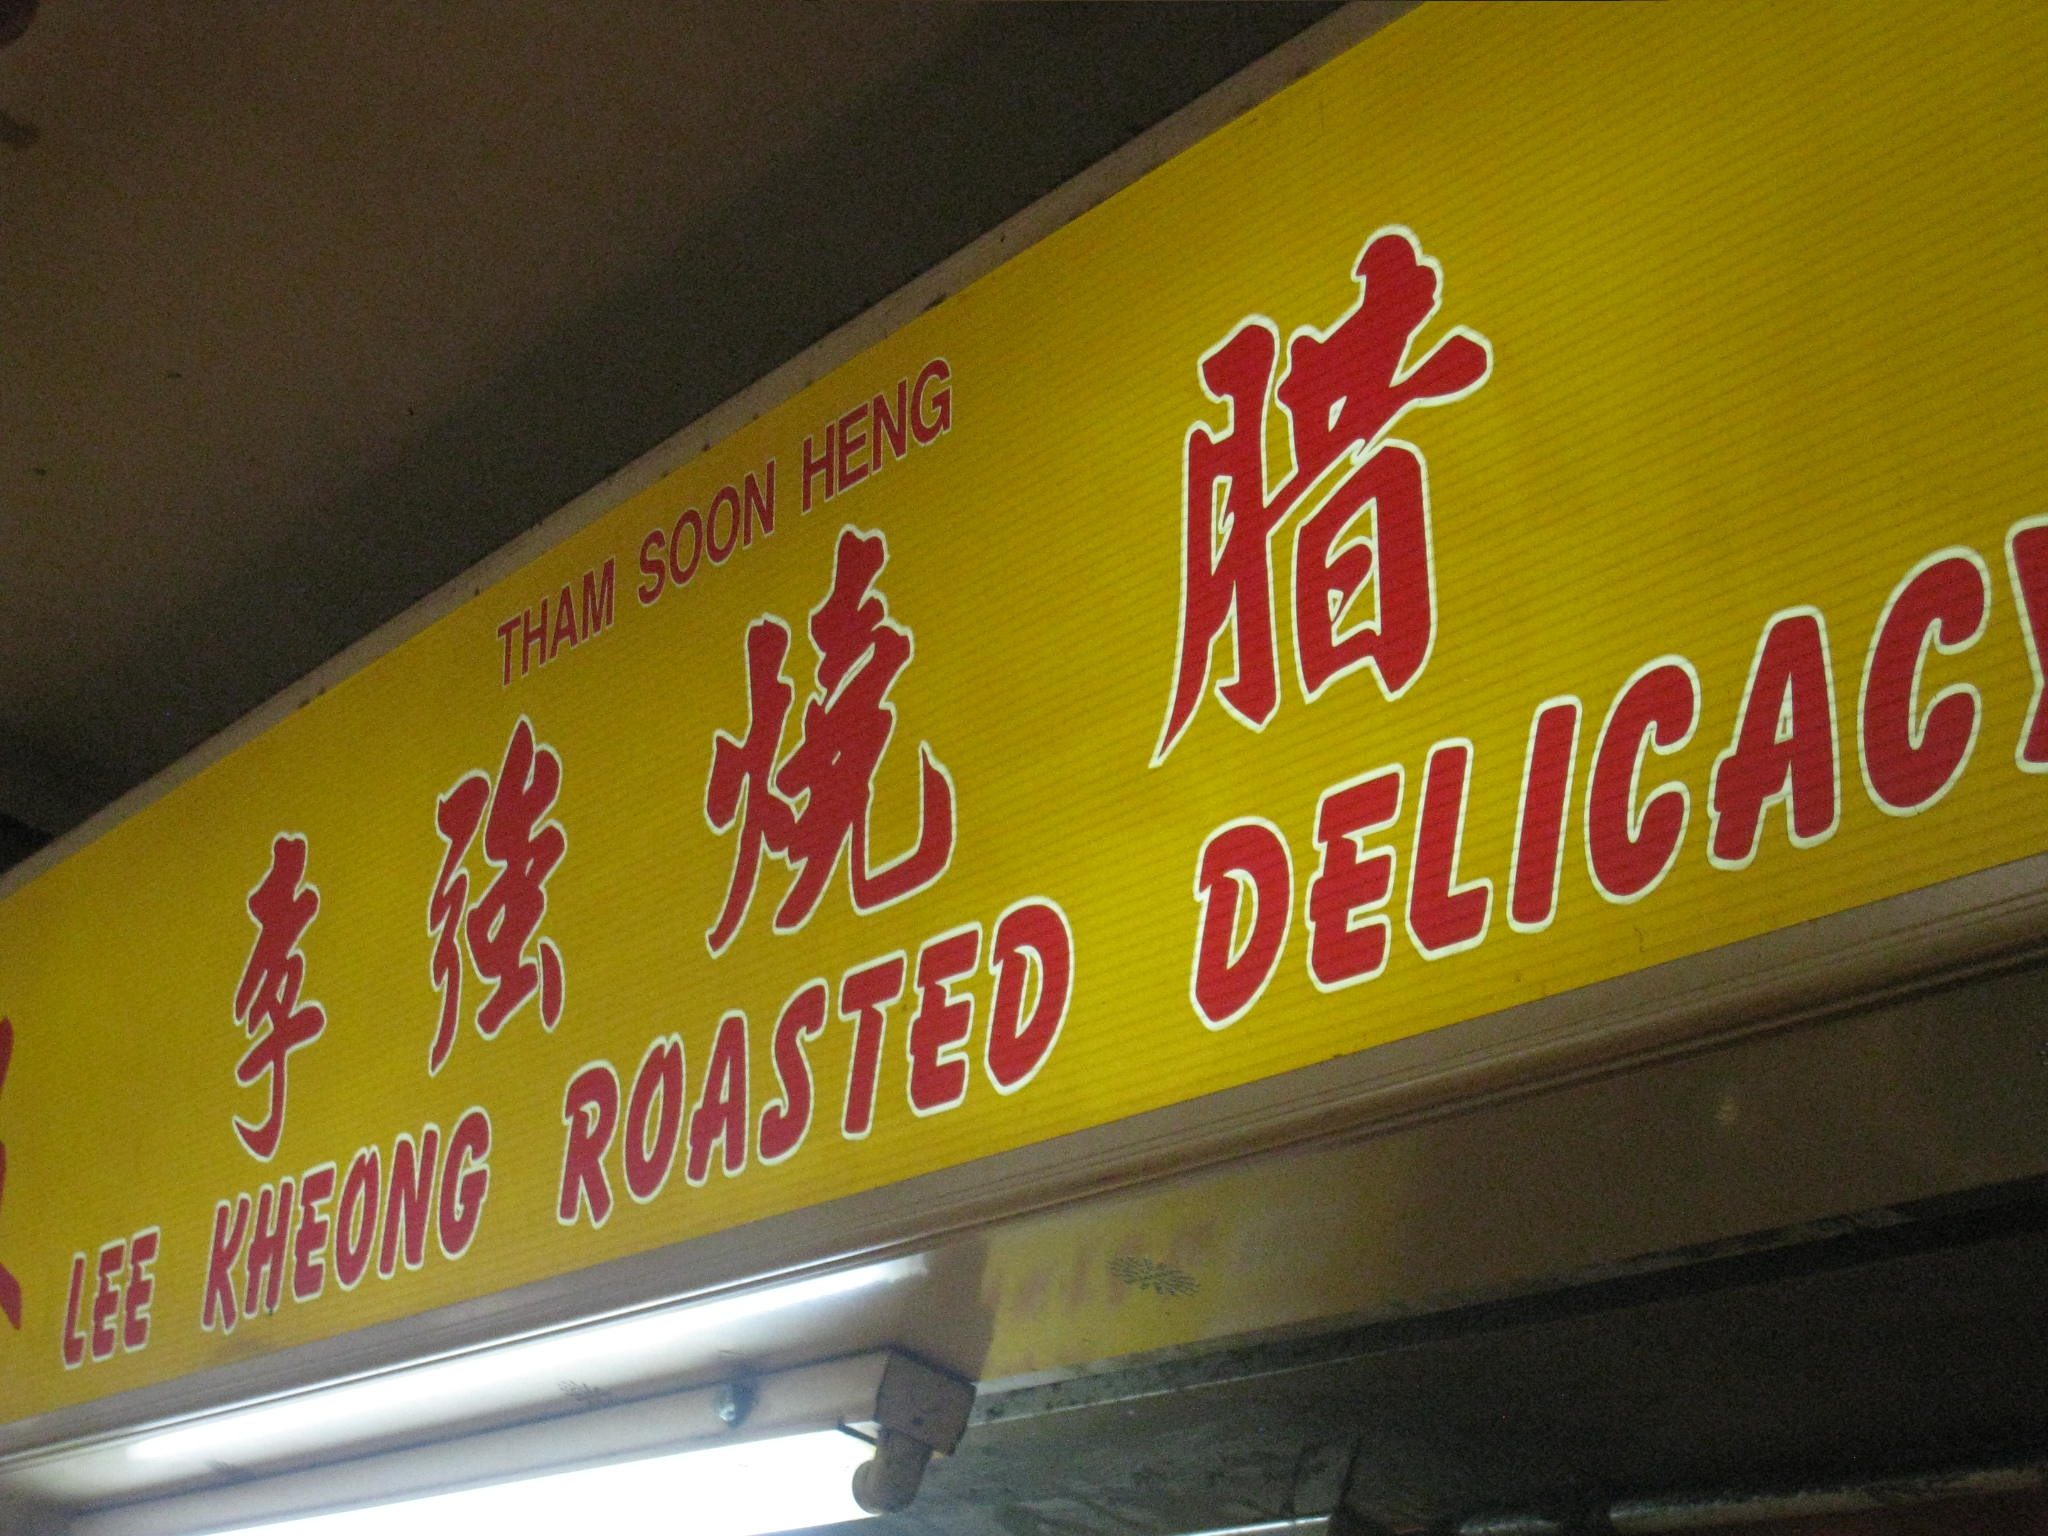 Lee Kheong Roasted Delicacy(People\'s Park FC)_c0212604_6315932.jpg